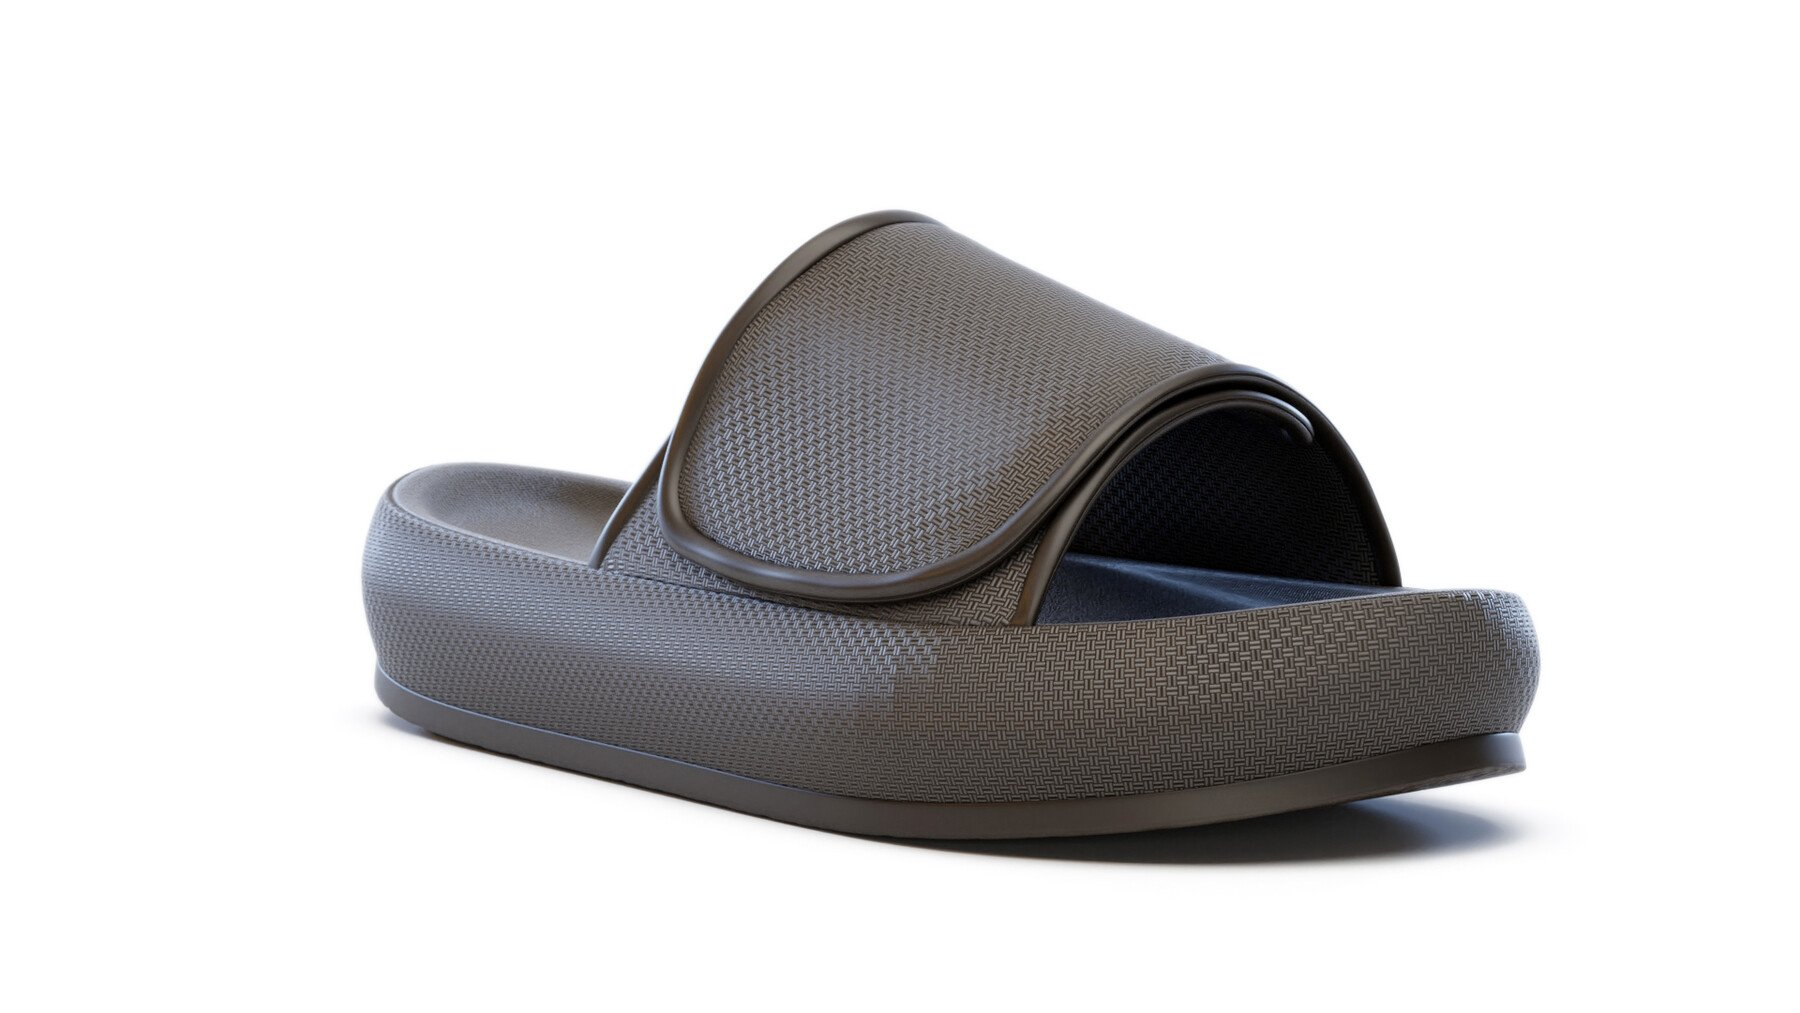 product image 10